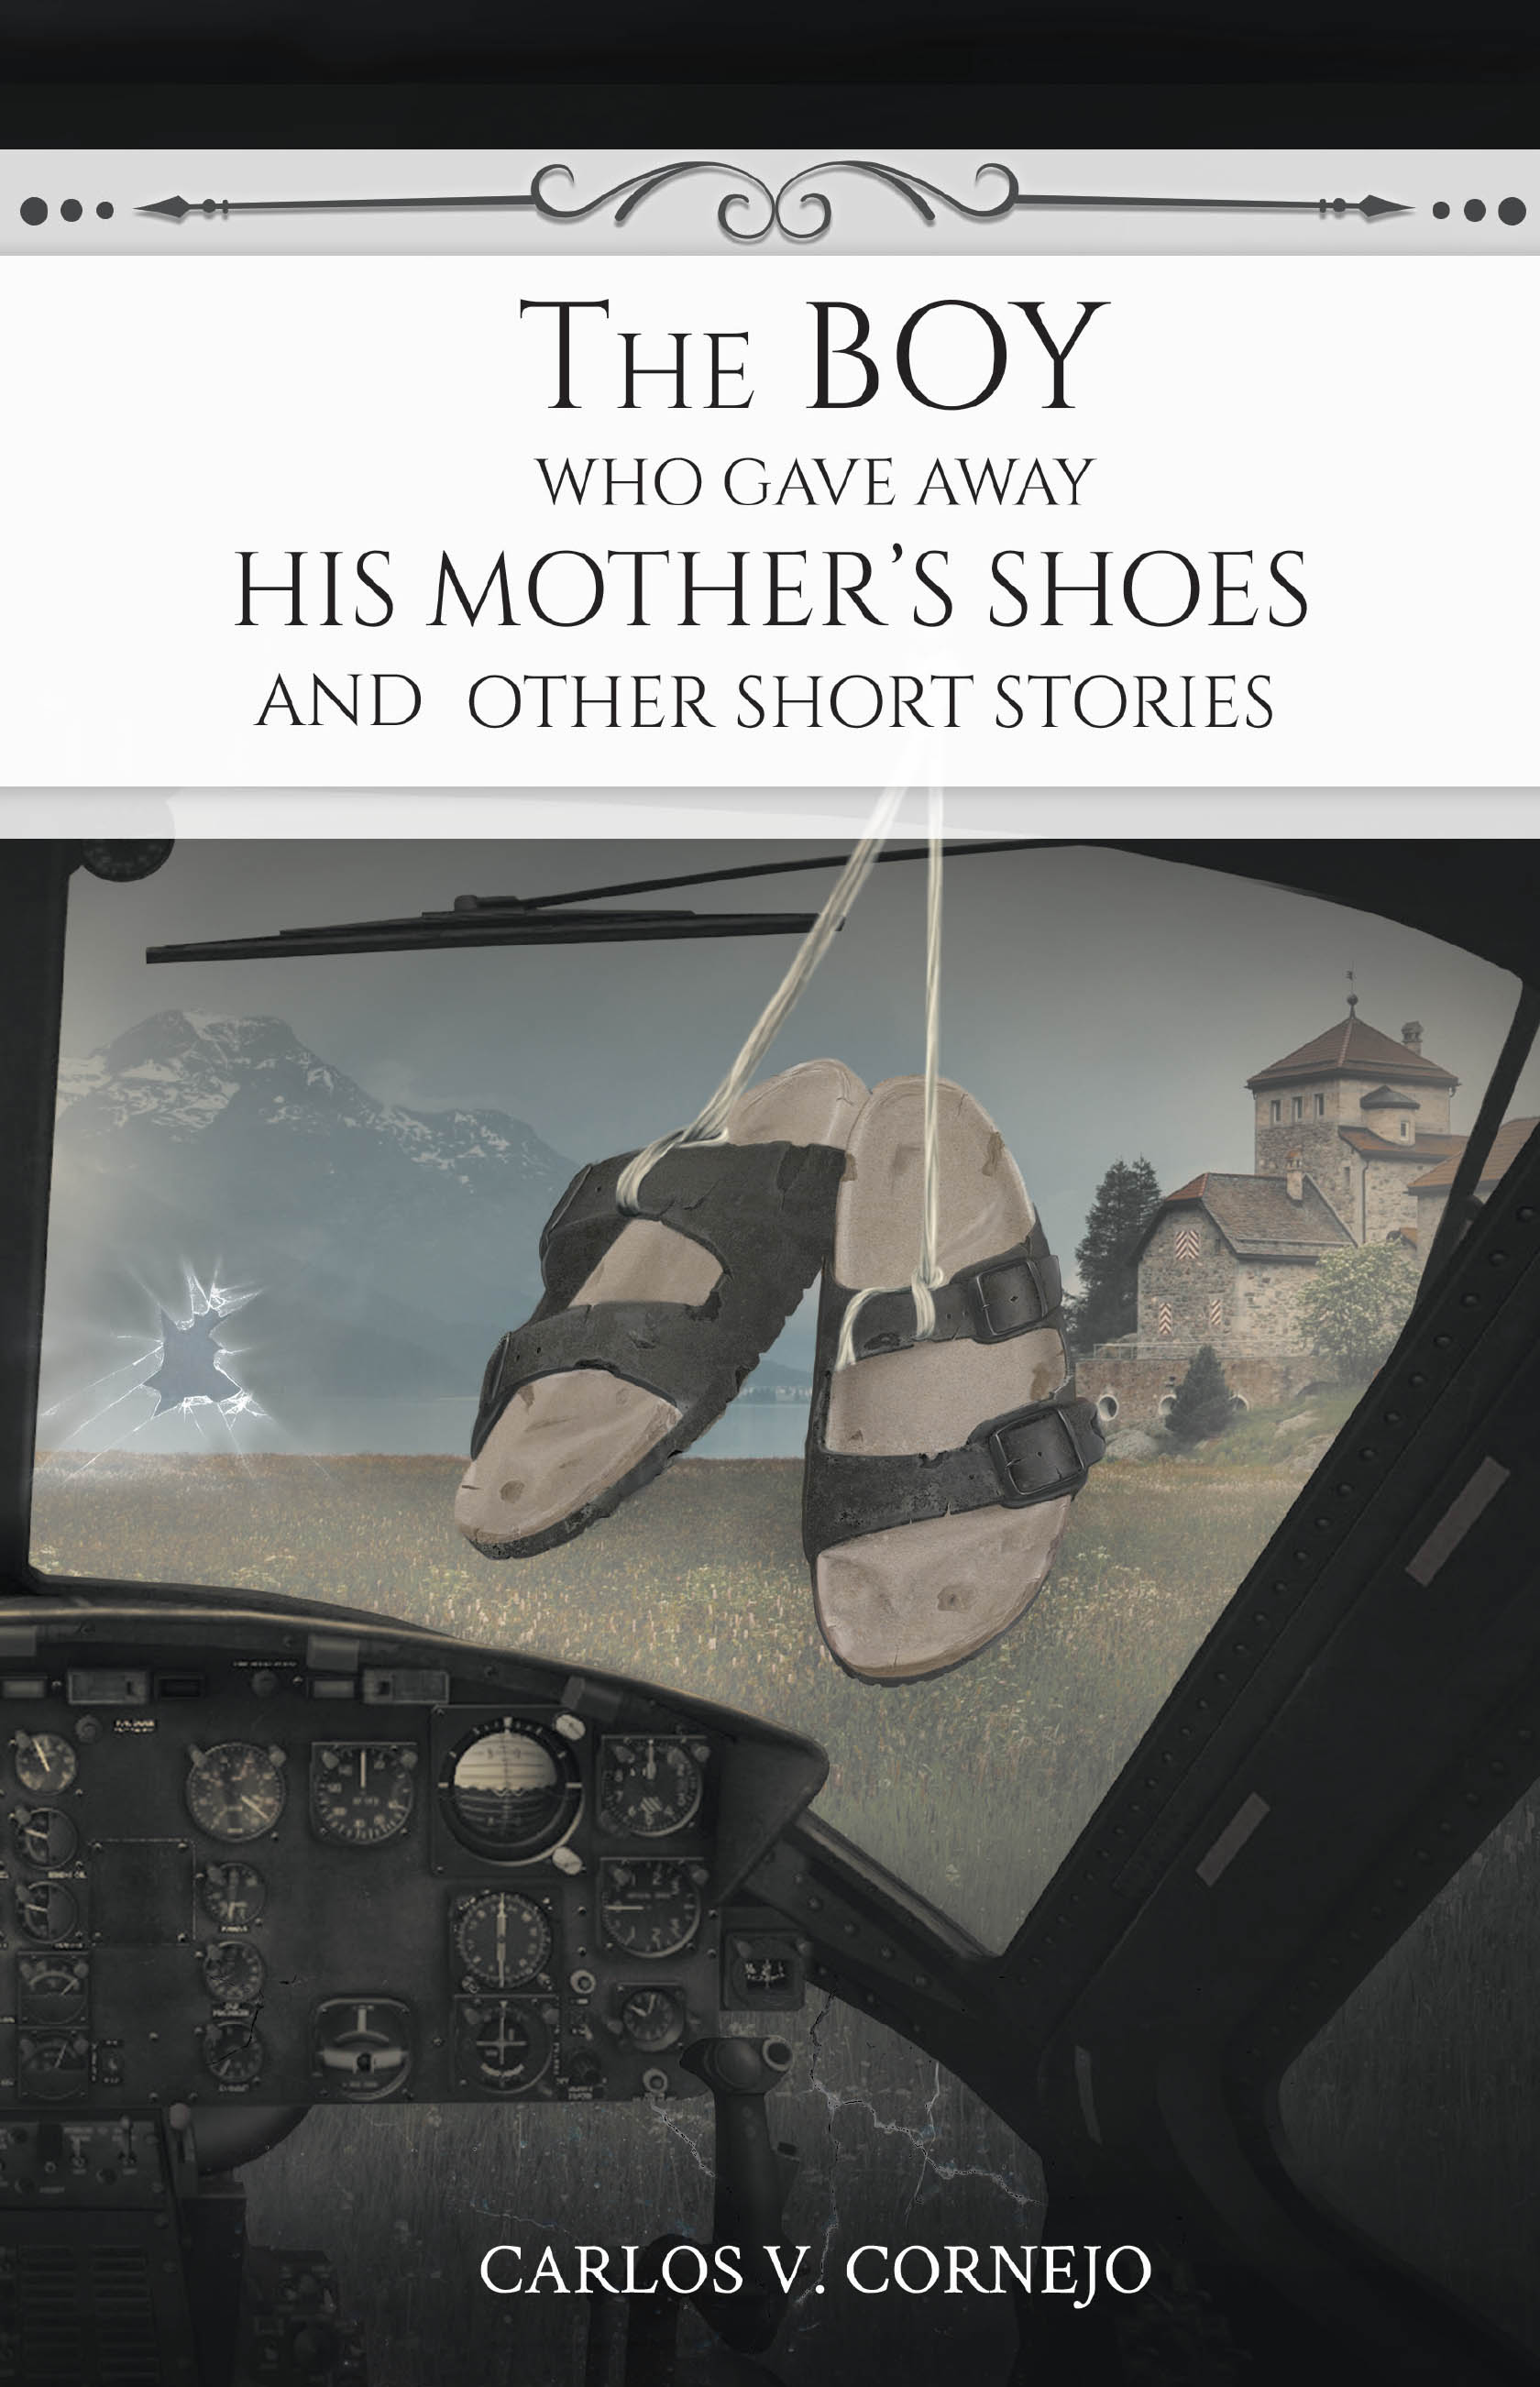 The Boy Who Gave Away Her Mother's Shoes